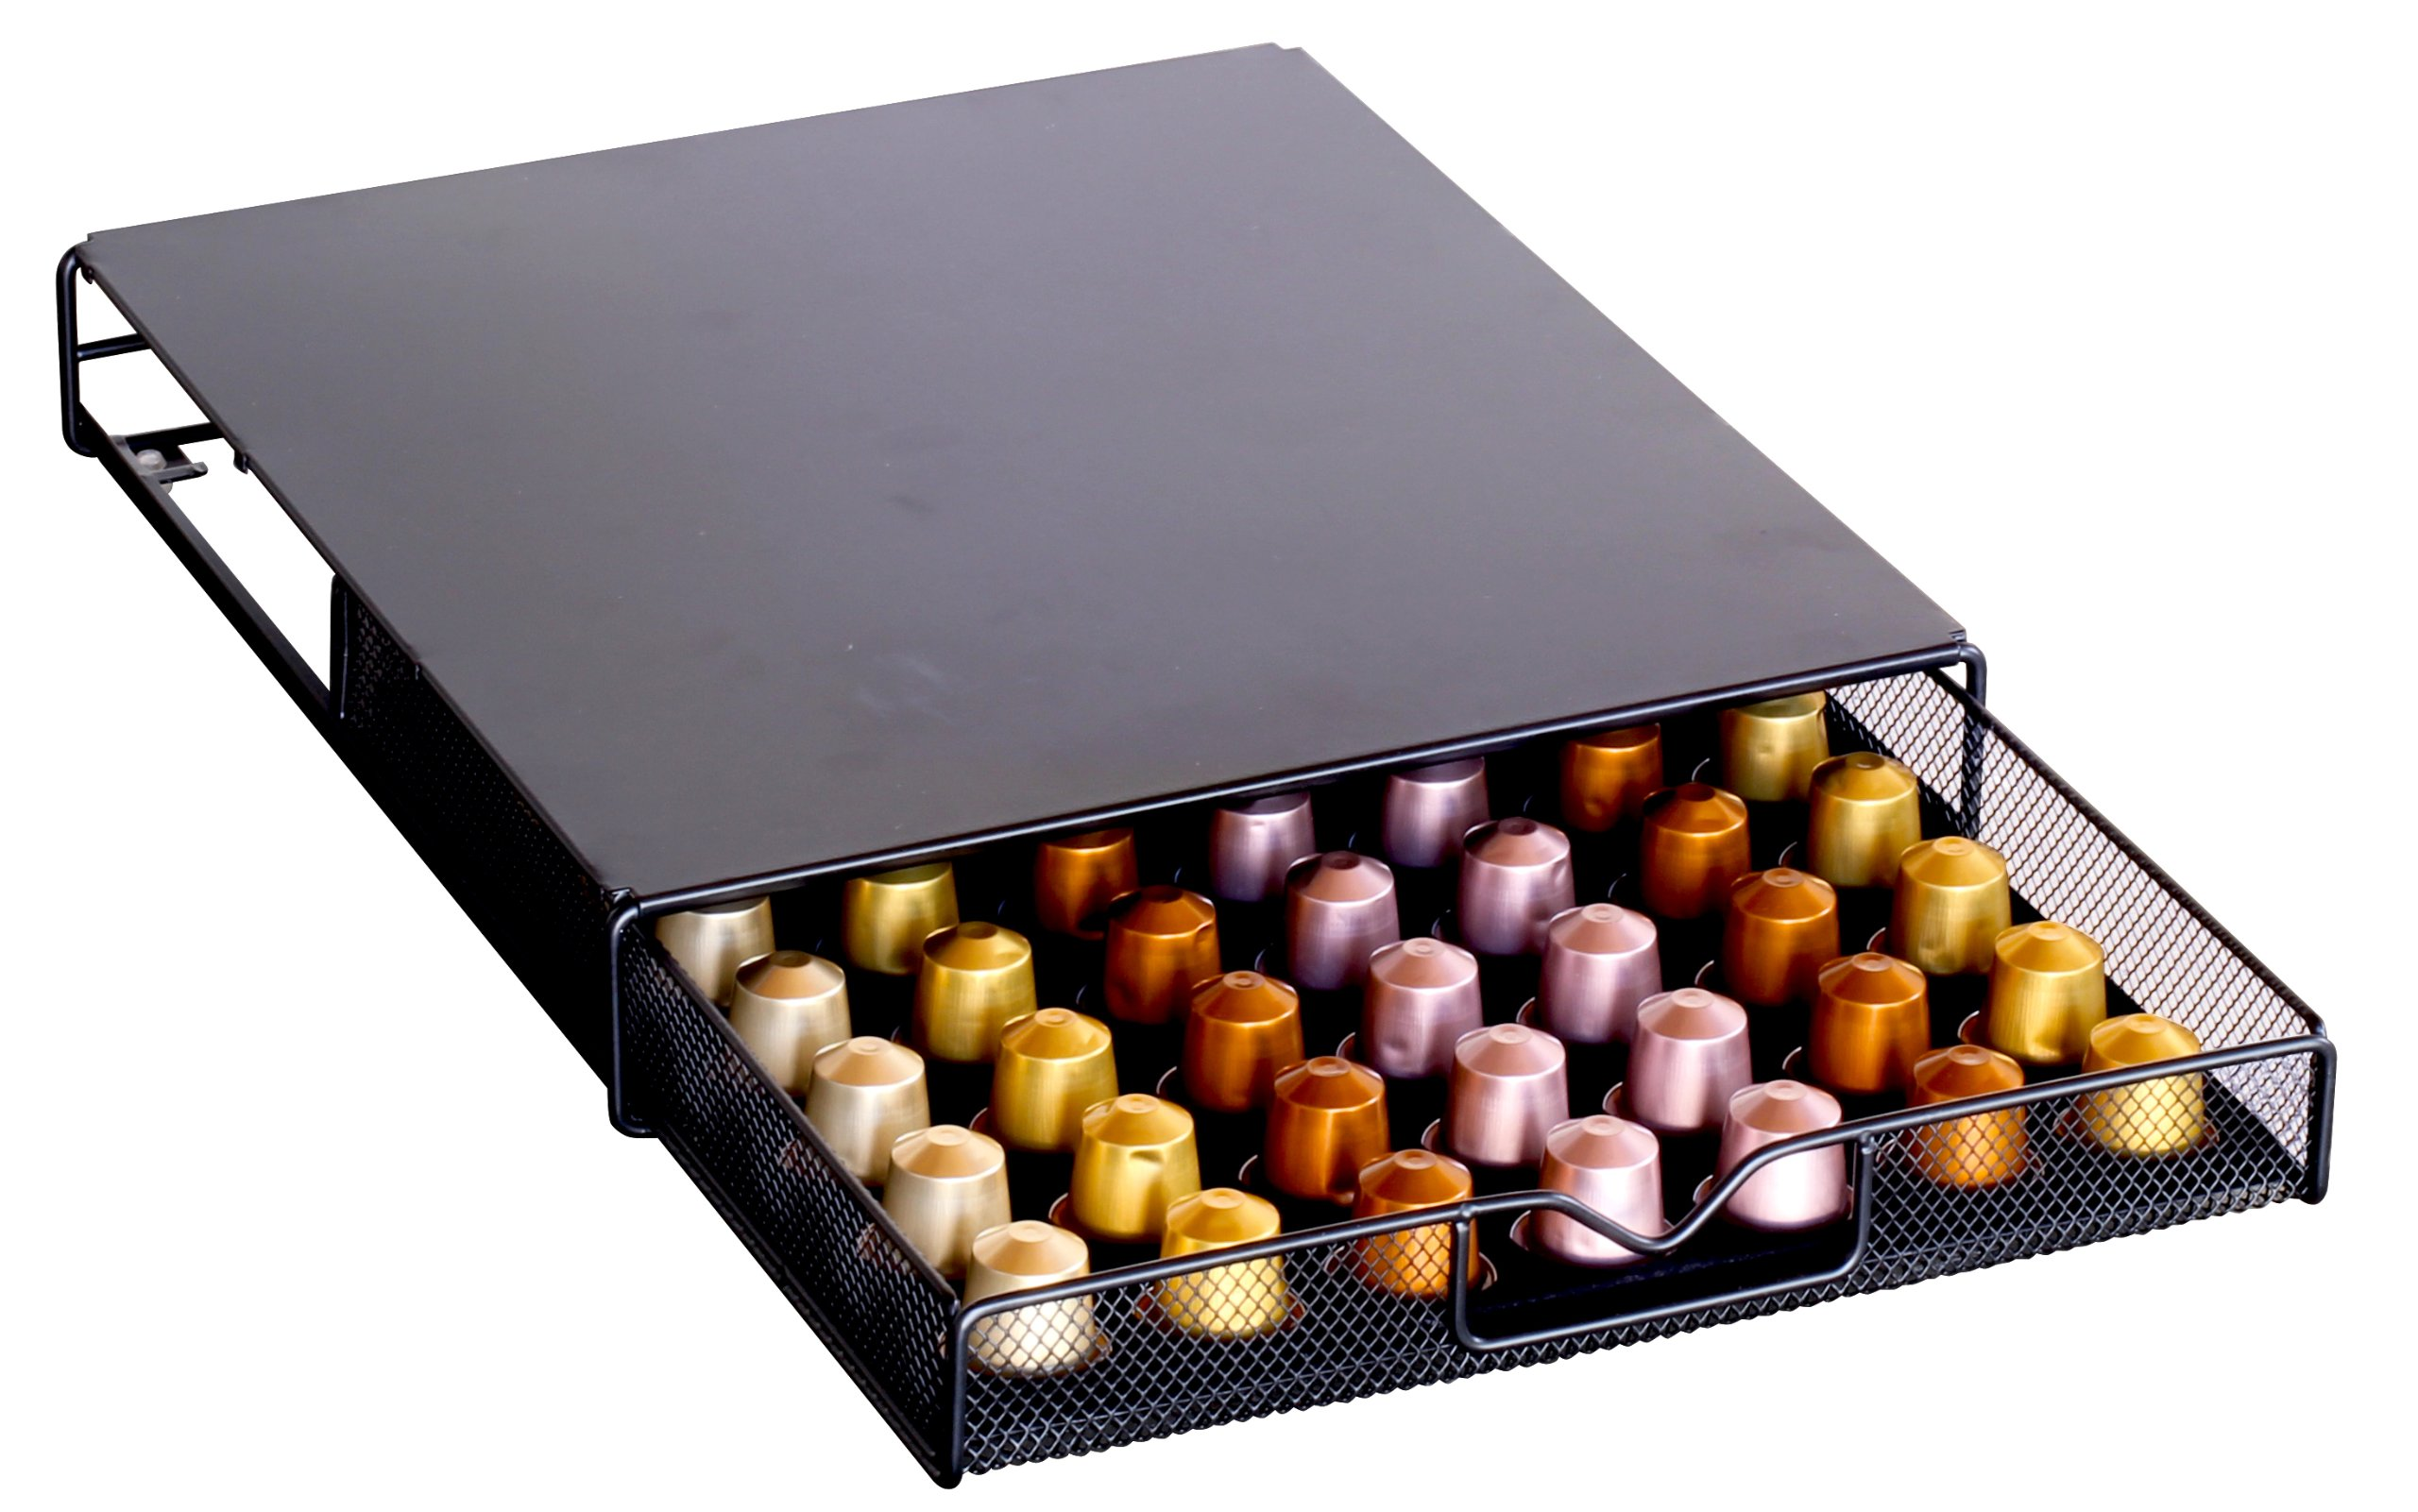 Charmant DecoBros Coffee Pod Storage Mesh Nespresso Drawer Holder For 56 Capsules,  Black